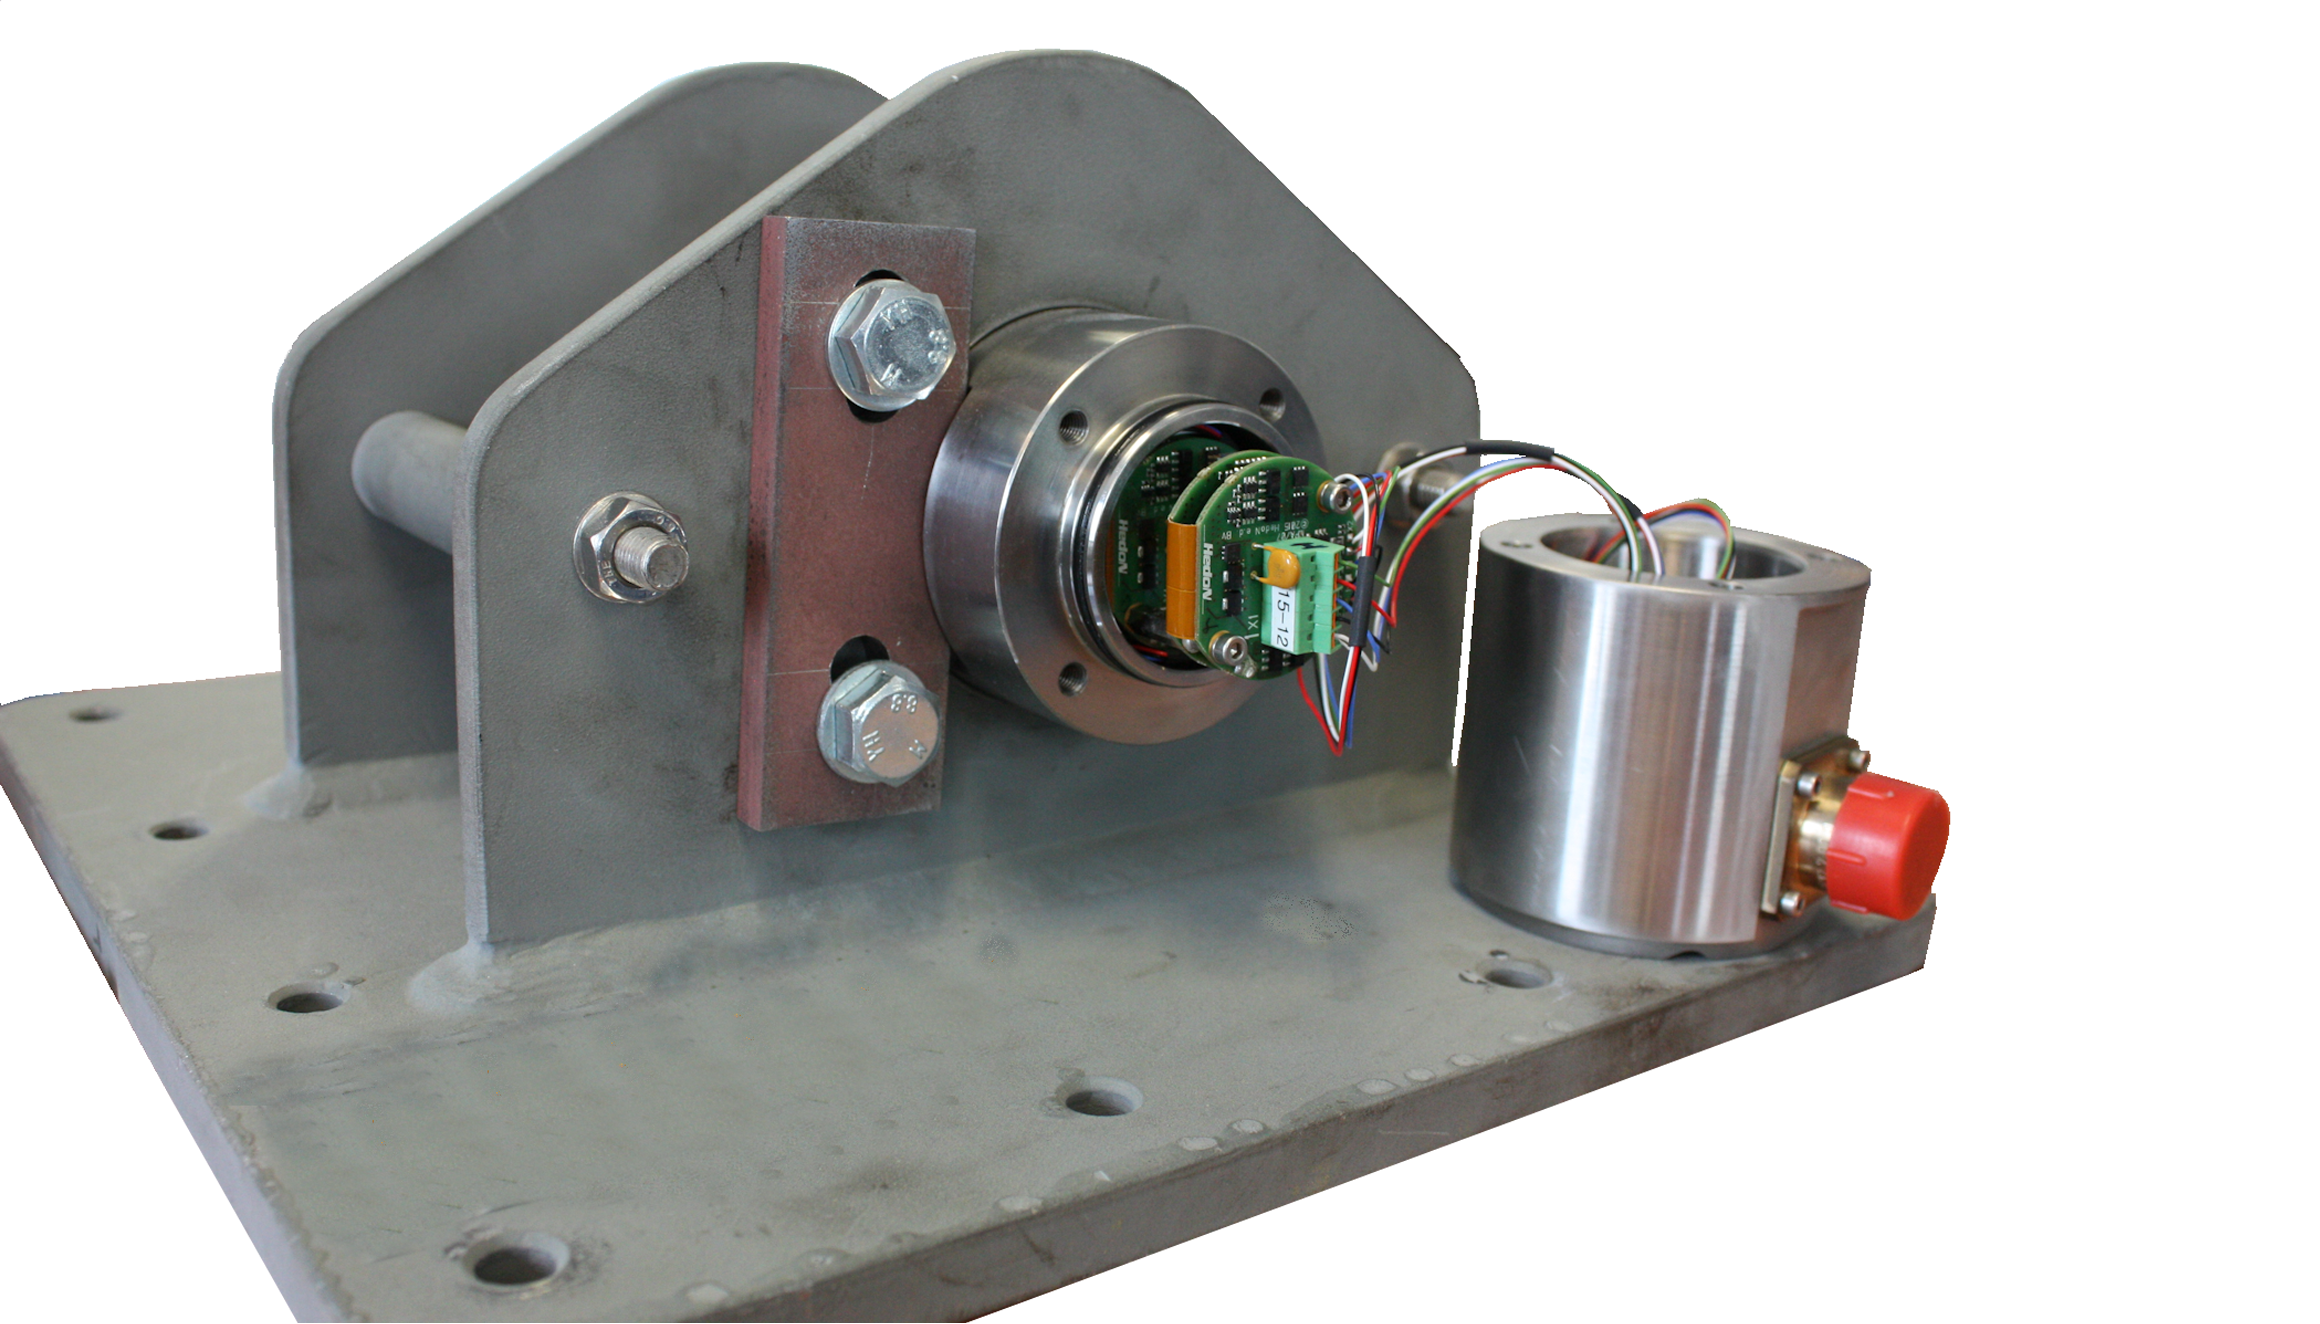 Measuring Pin Amplifier (MPA07)